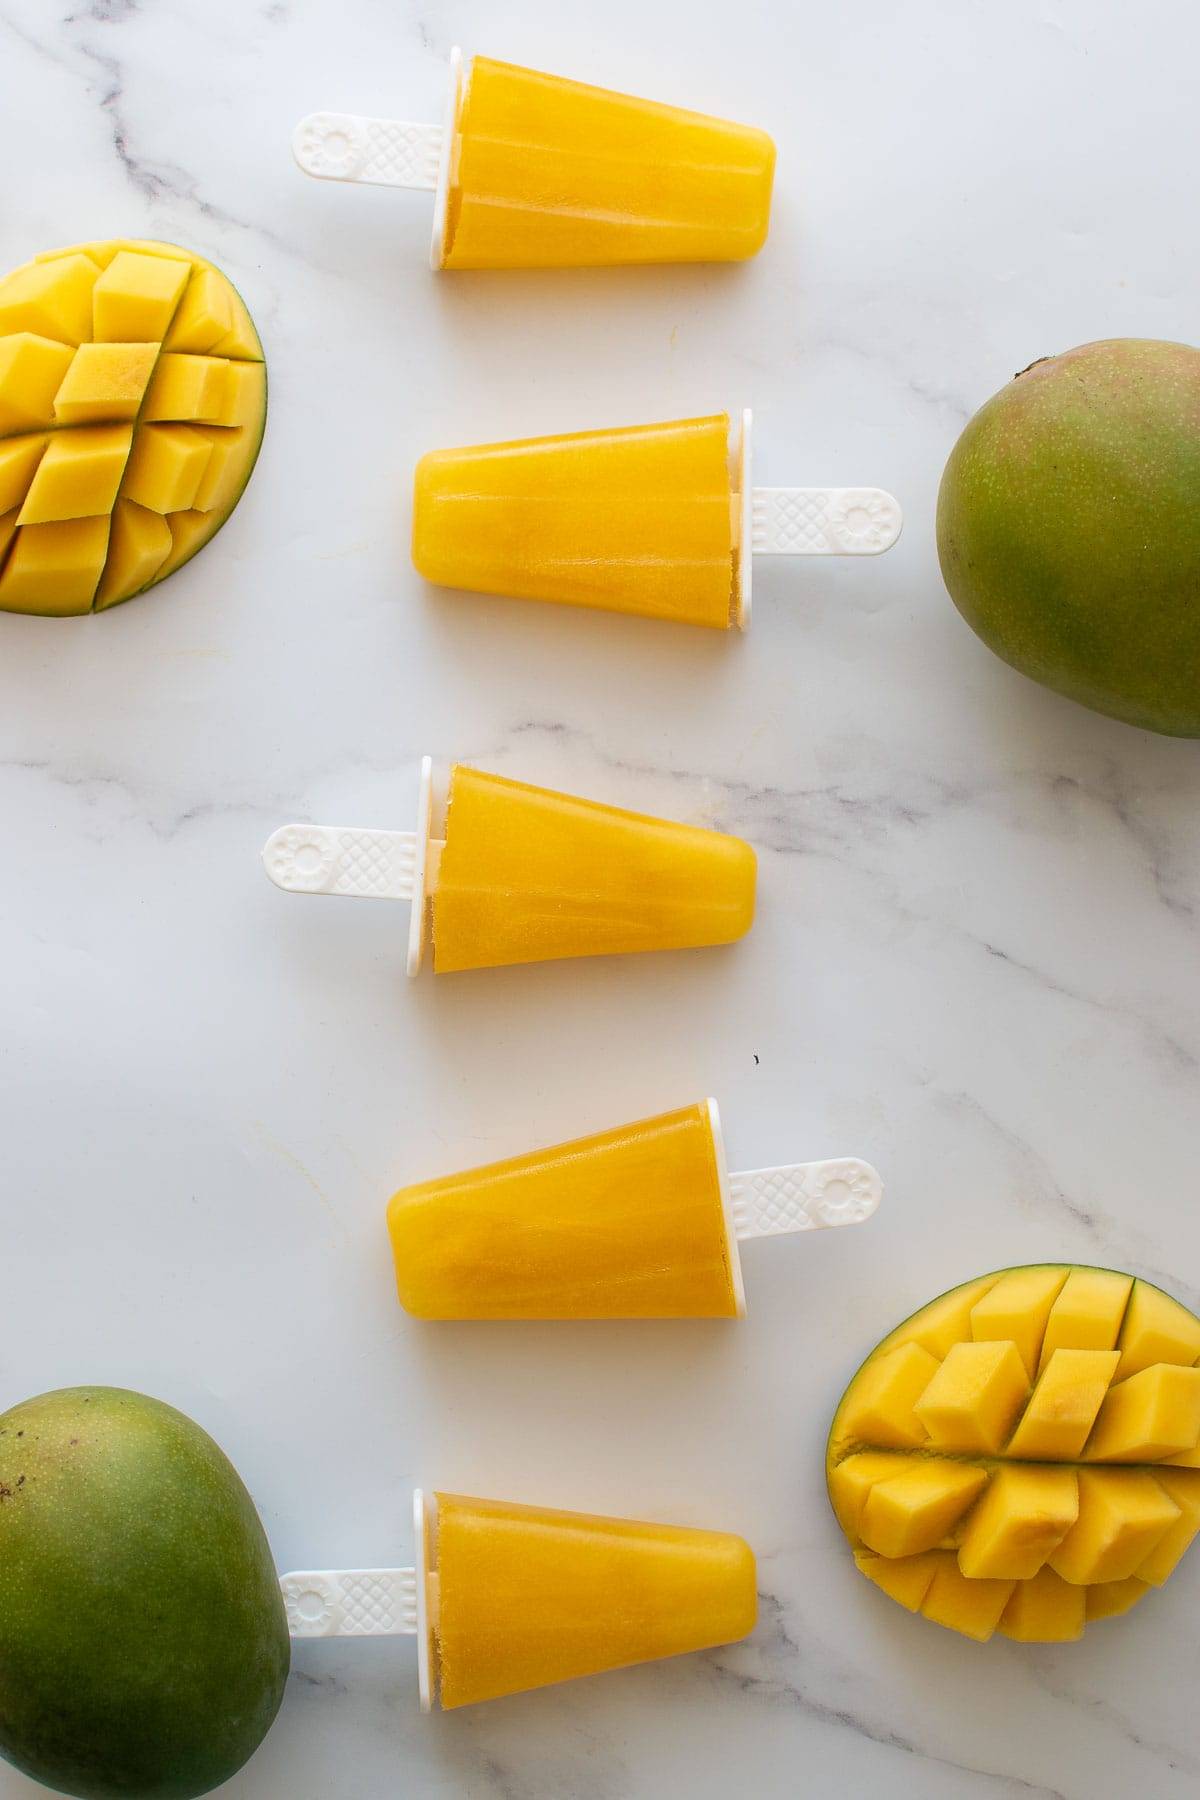 Mango popsicles lined up on a table.